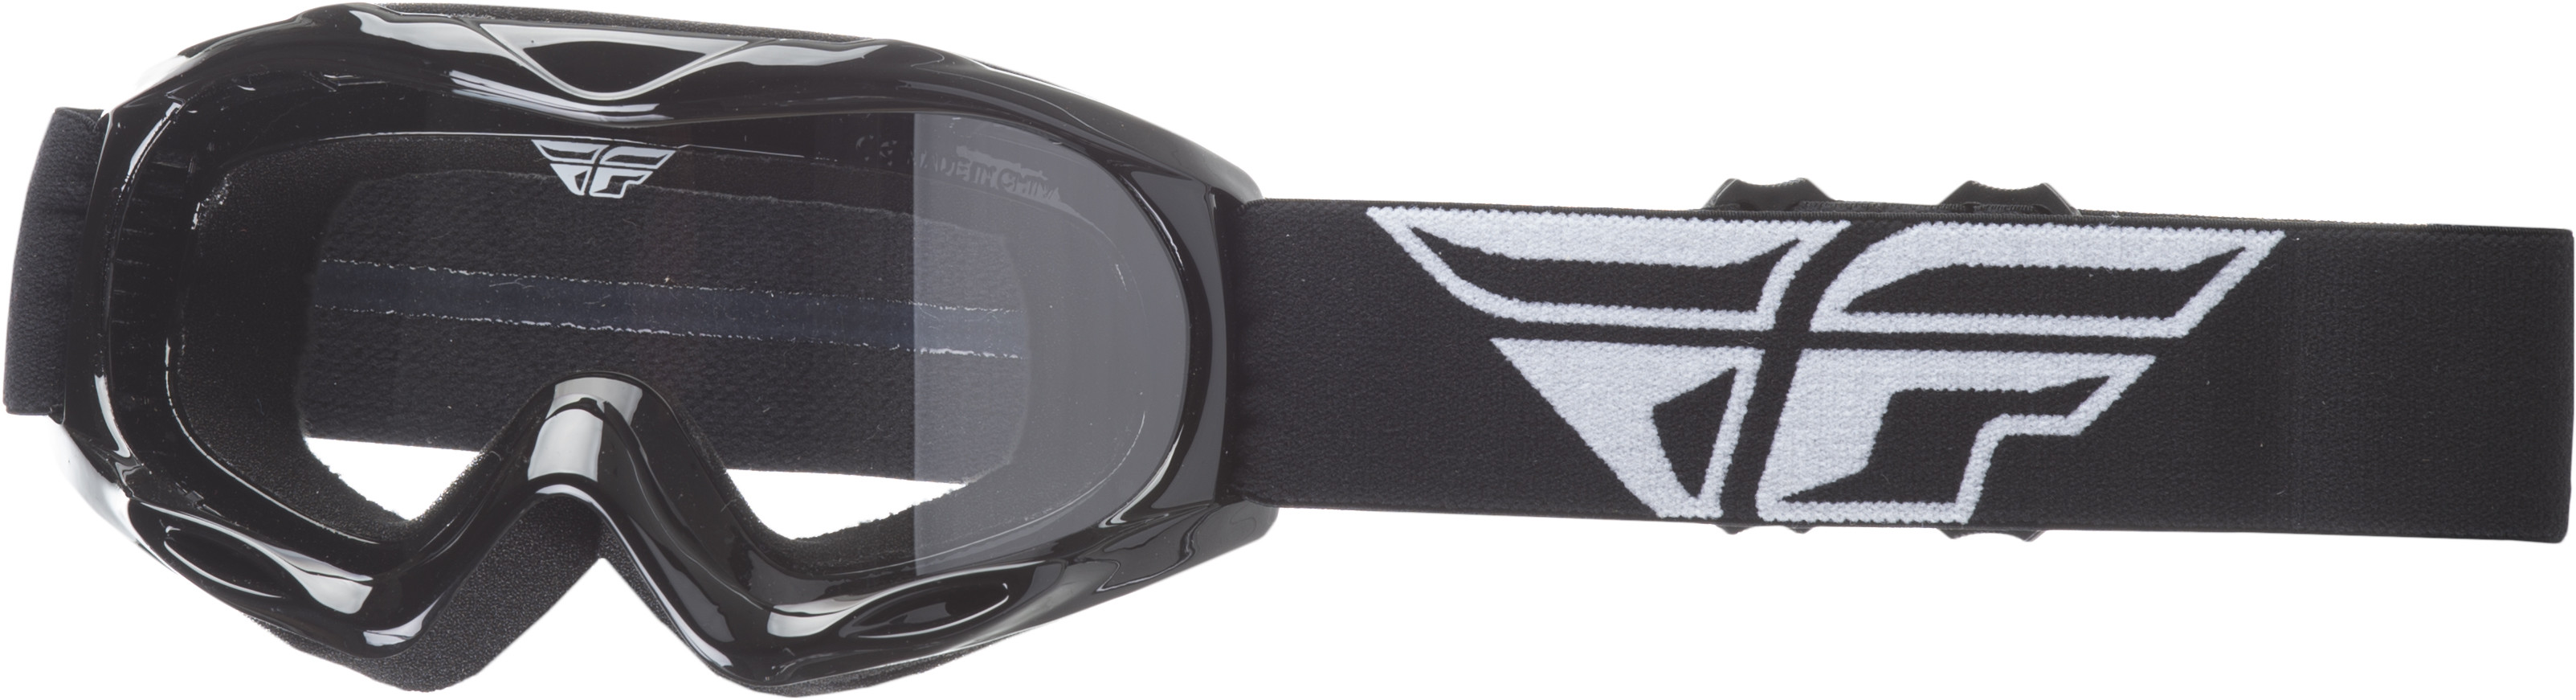 Focus Youth Goggle Black W/ Clear Lens